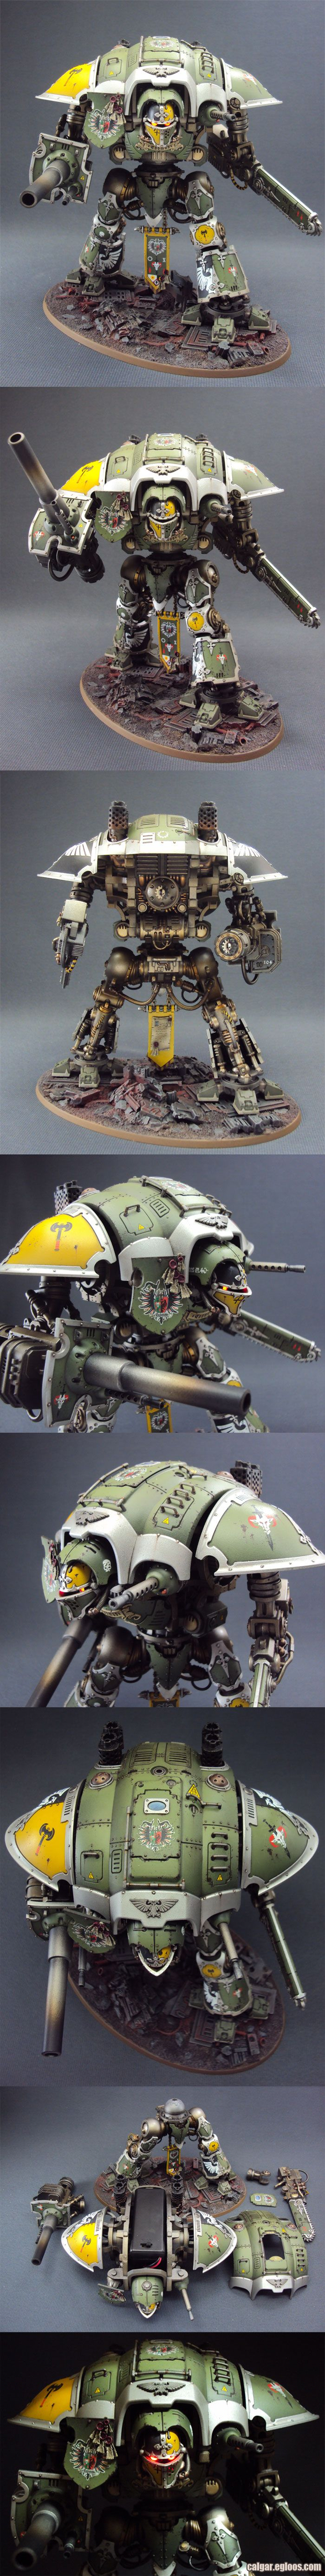 Imperial knight, House Cadmus